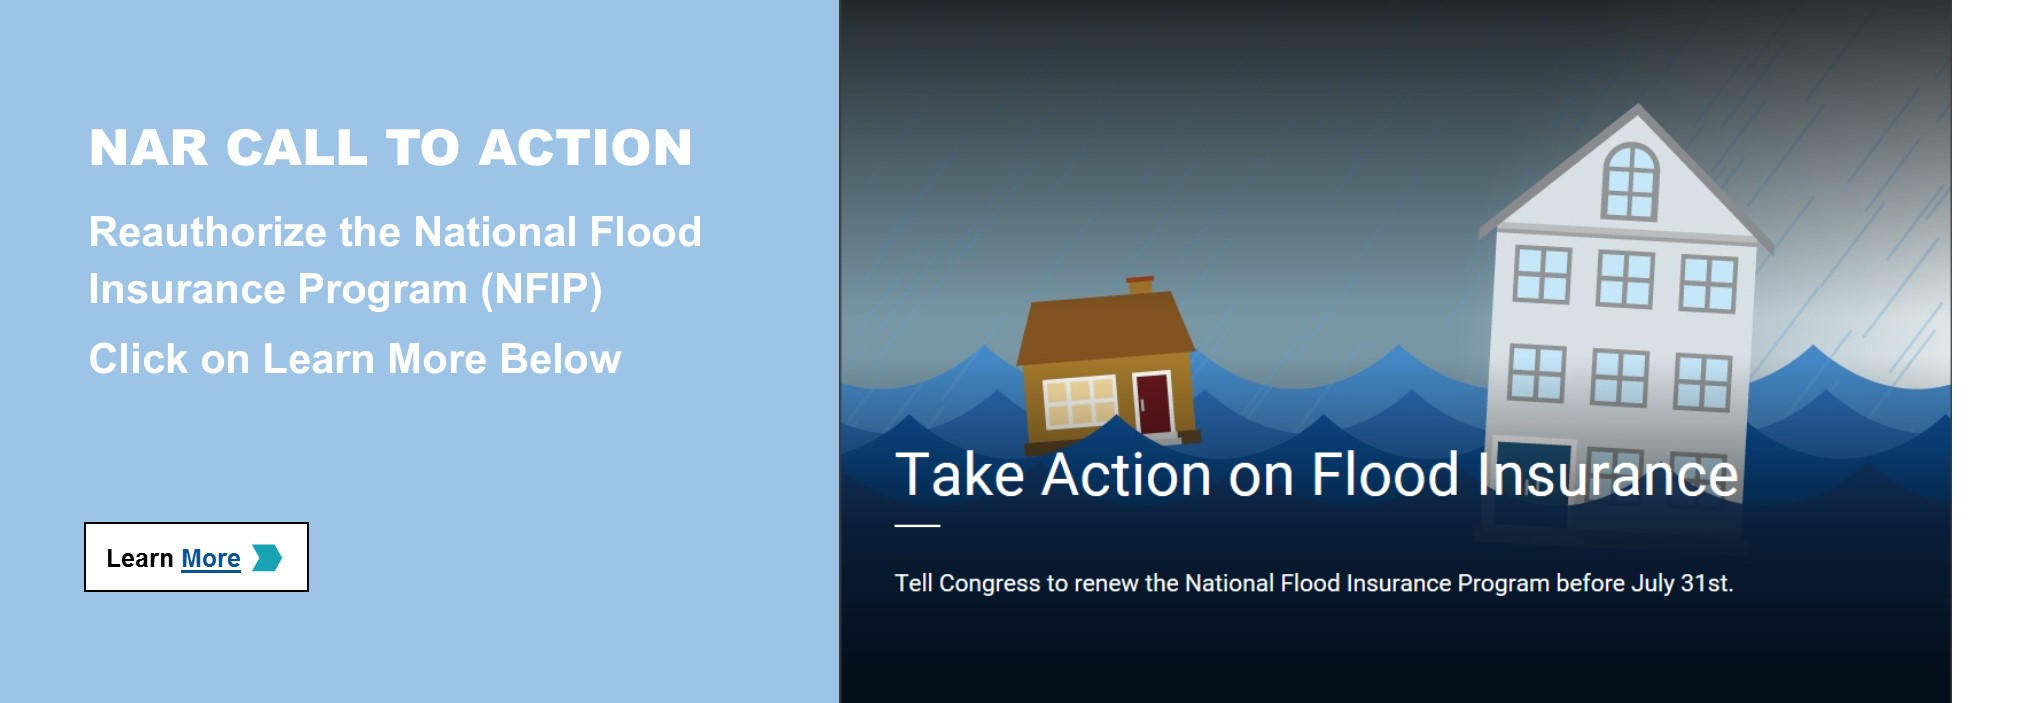 WPBOR_Slider_NAR-Reauthorize National Flood Insurance Program